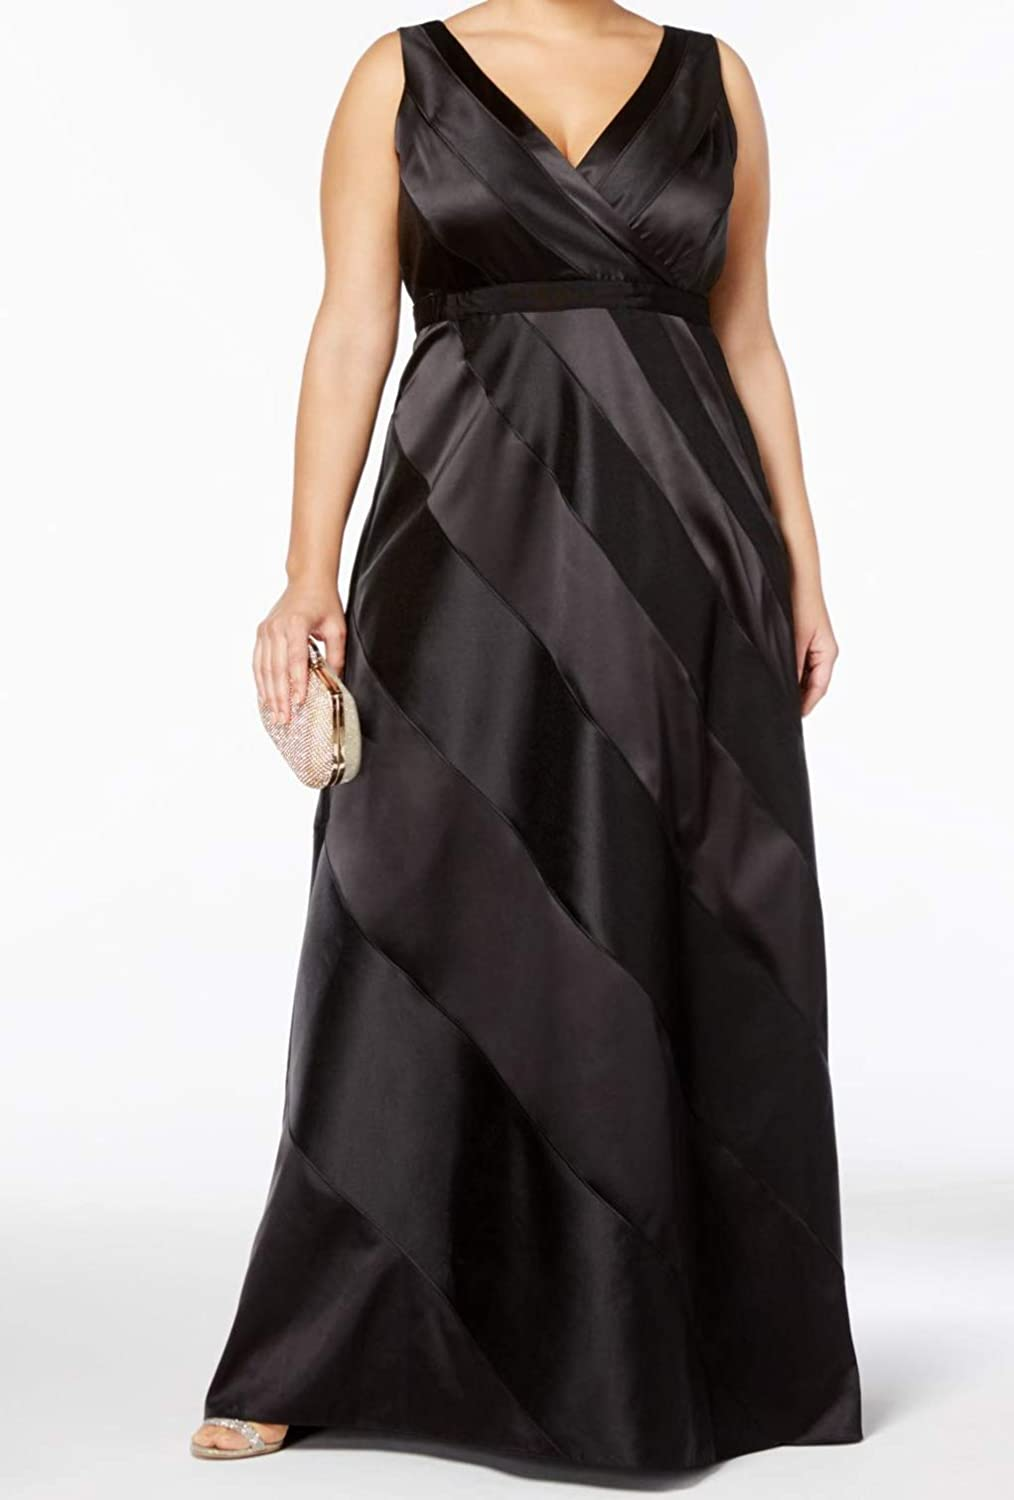 Adrianna Papell Womens Satin Special Occasion Evening Dress